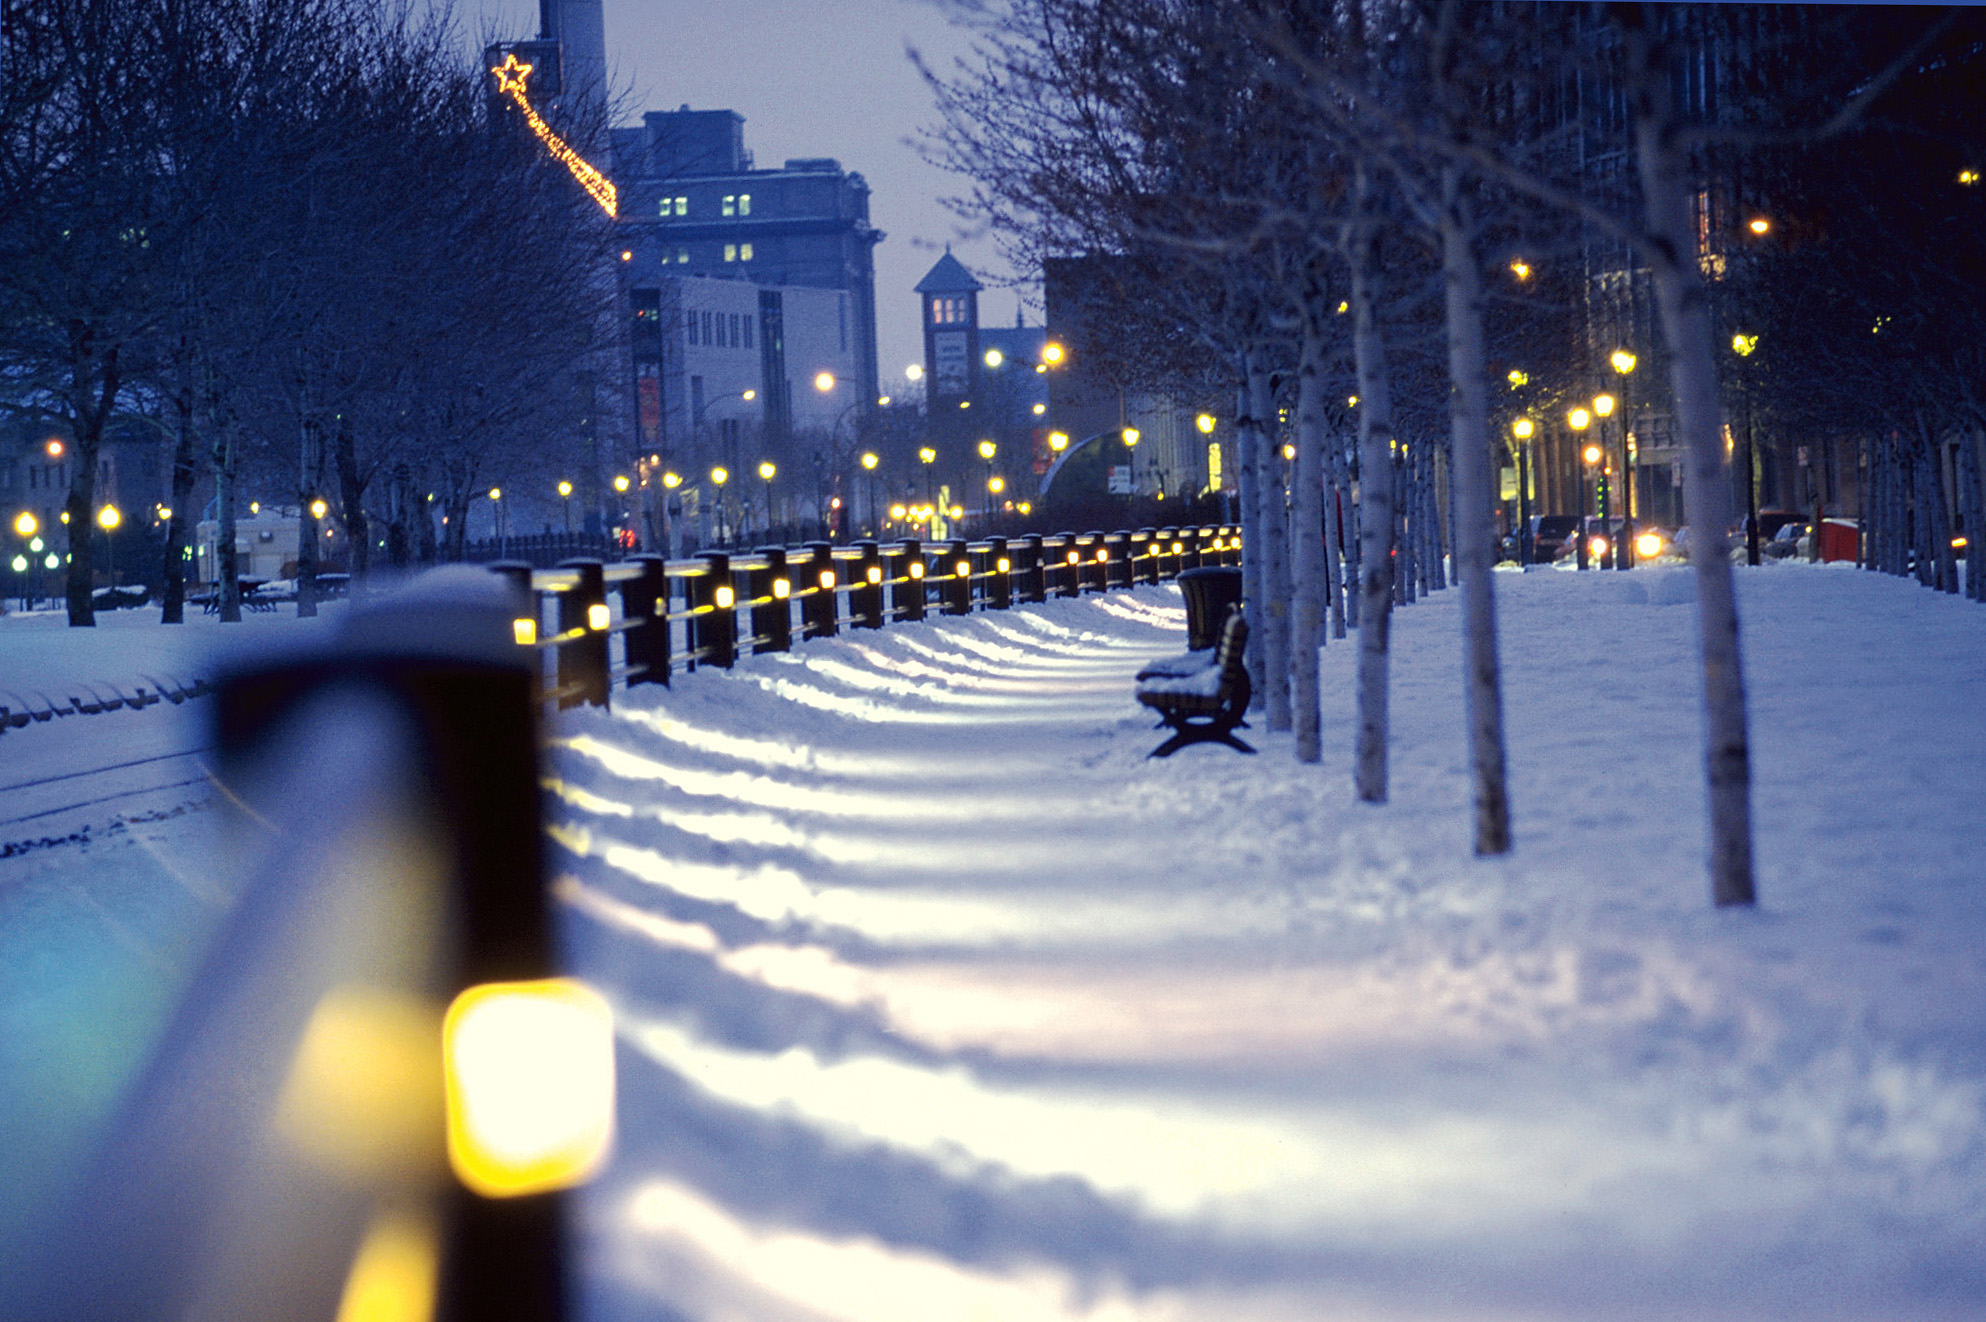 Top 10 most romantic things to do in montreal poster romance for Romantic things to do in nyc winter